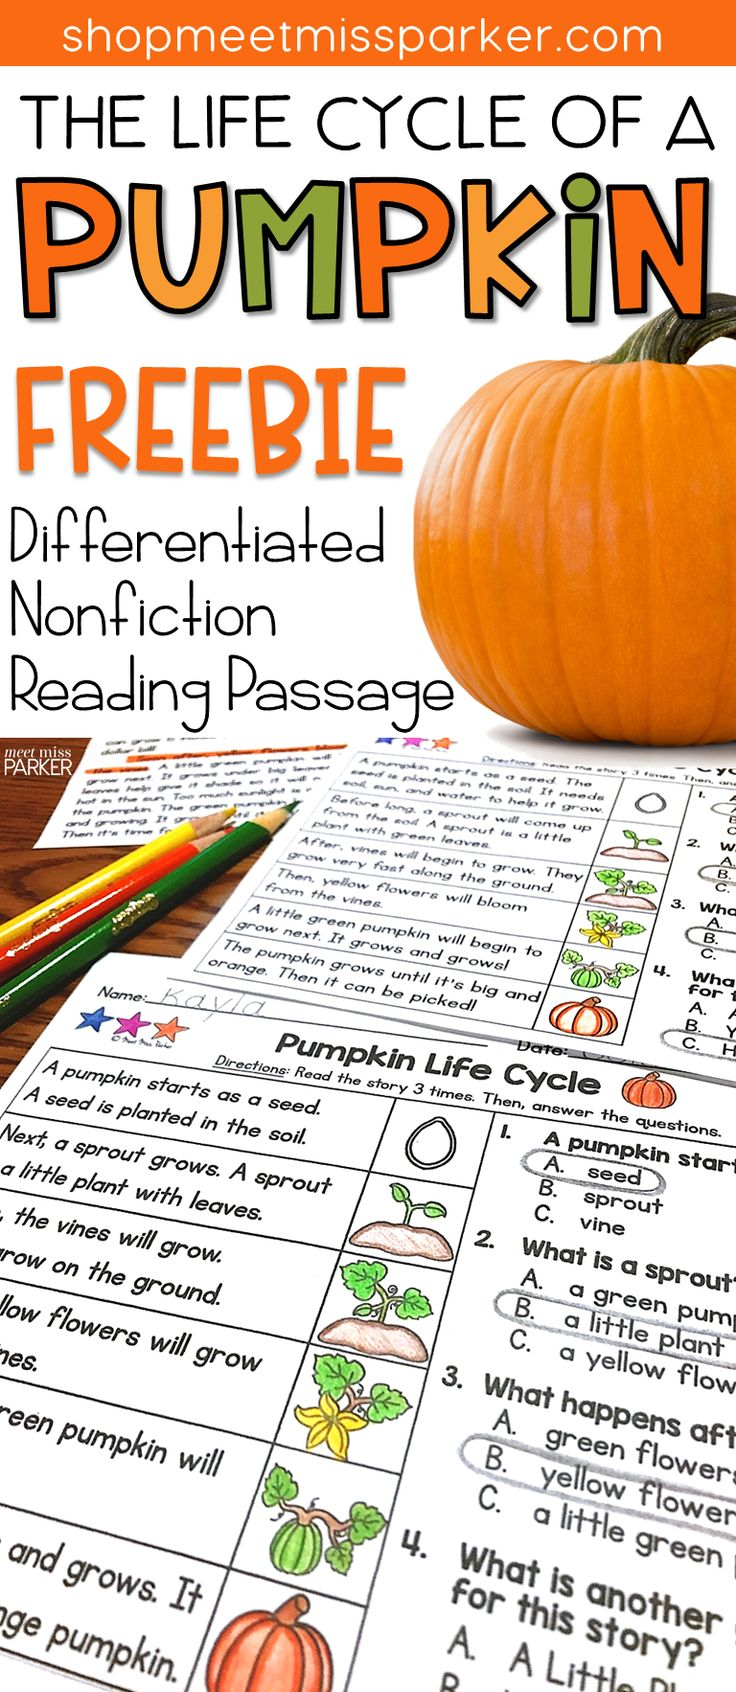 FREE Nonfiction Differentiated Reading Passage for first grade. This pumpkin life cycle reading comprehension passage can be used for reading interventions, literacy centers, homework, and guided reading groups in your 1st grade classroom!